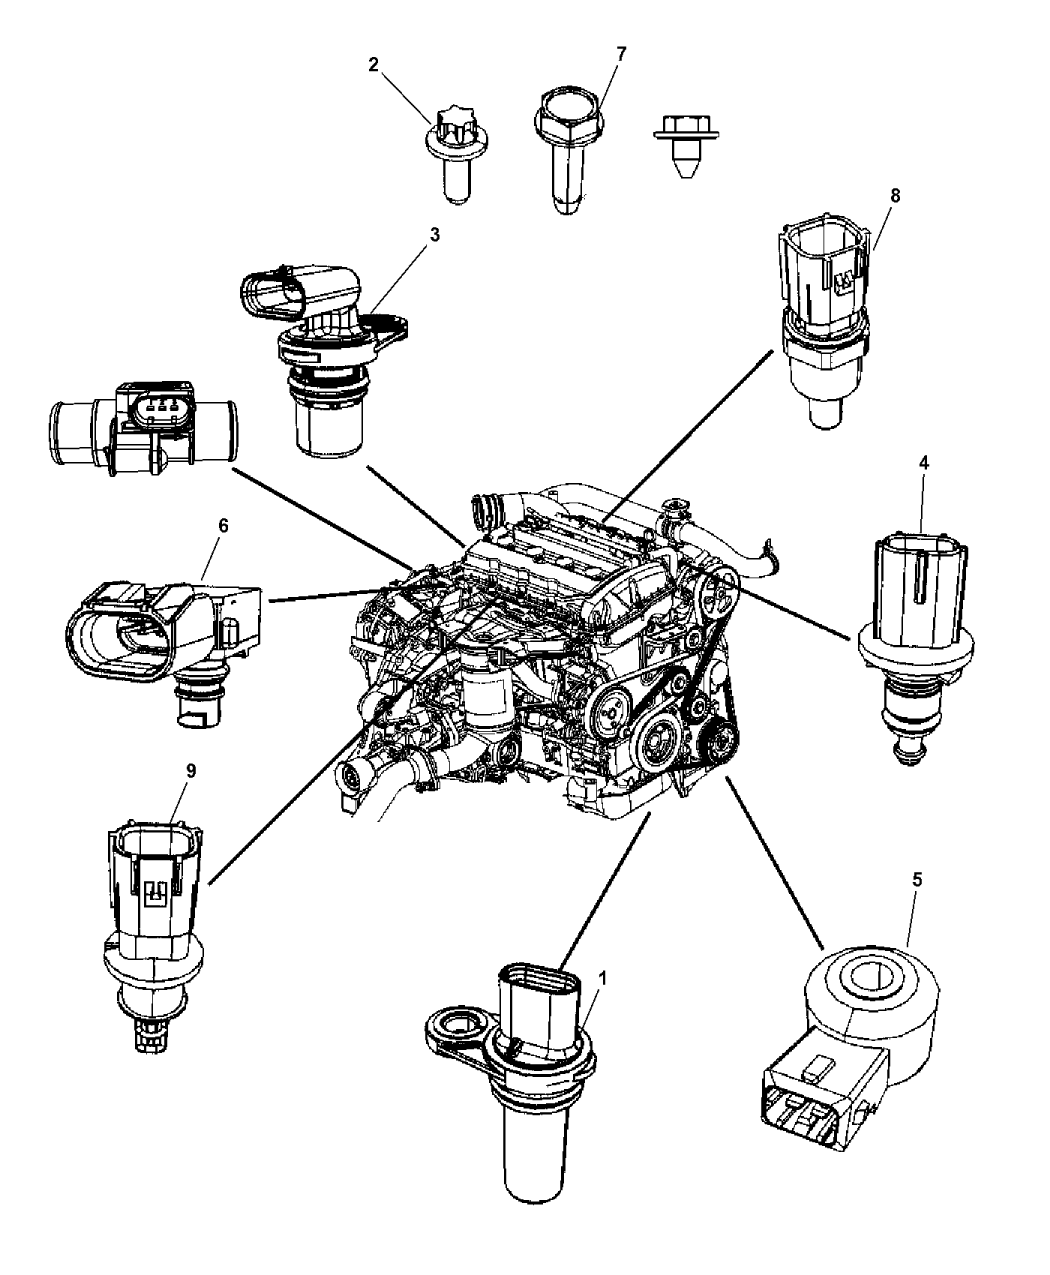 2014 Jeep Patriot 2 4 Engine Diagram. how to i change the serpentine belt.  2015 jeep patriot sensor crankshaft position vehicle. 2007 jeep compass  engine diagram automotive parts. water pump and related2002-acura-tl-radio.info